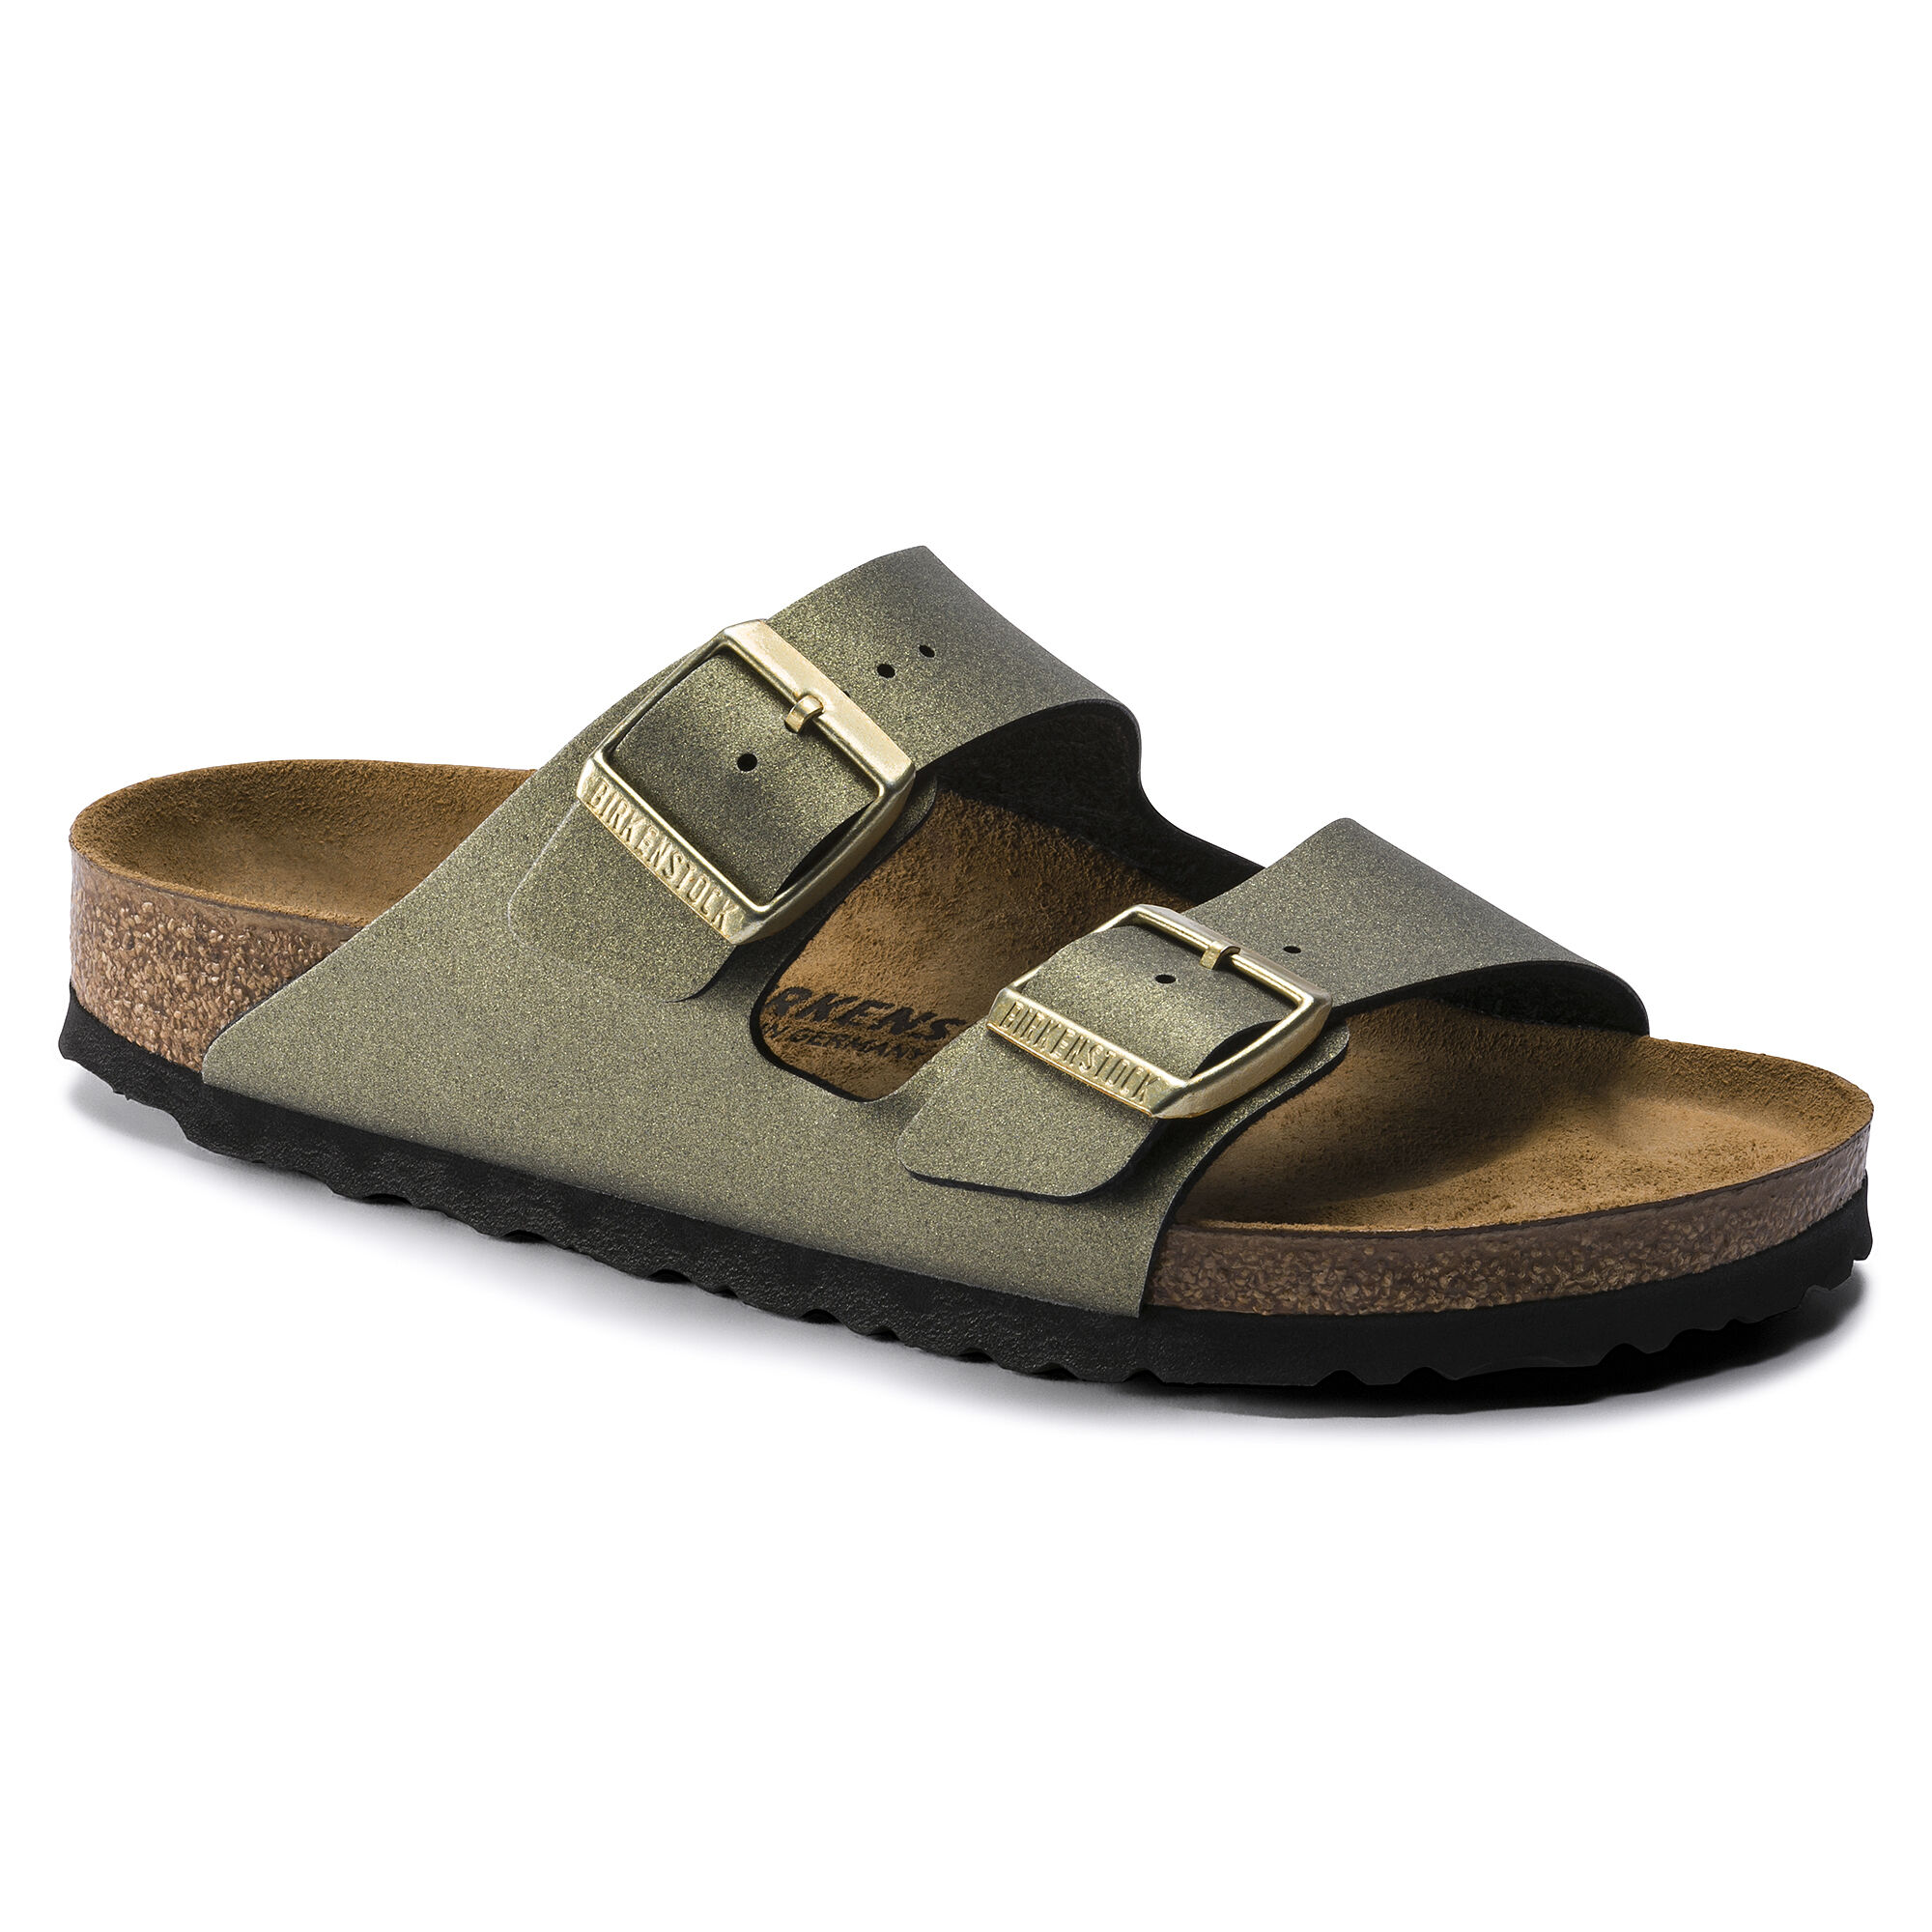 BIRKENSTOCK TAORMINA WOMEN'S THONGUE SANDALS MOCHA